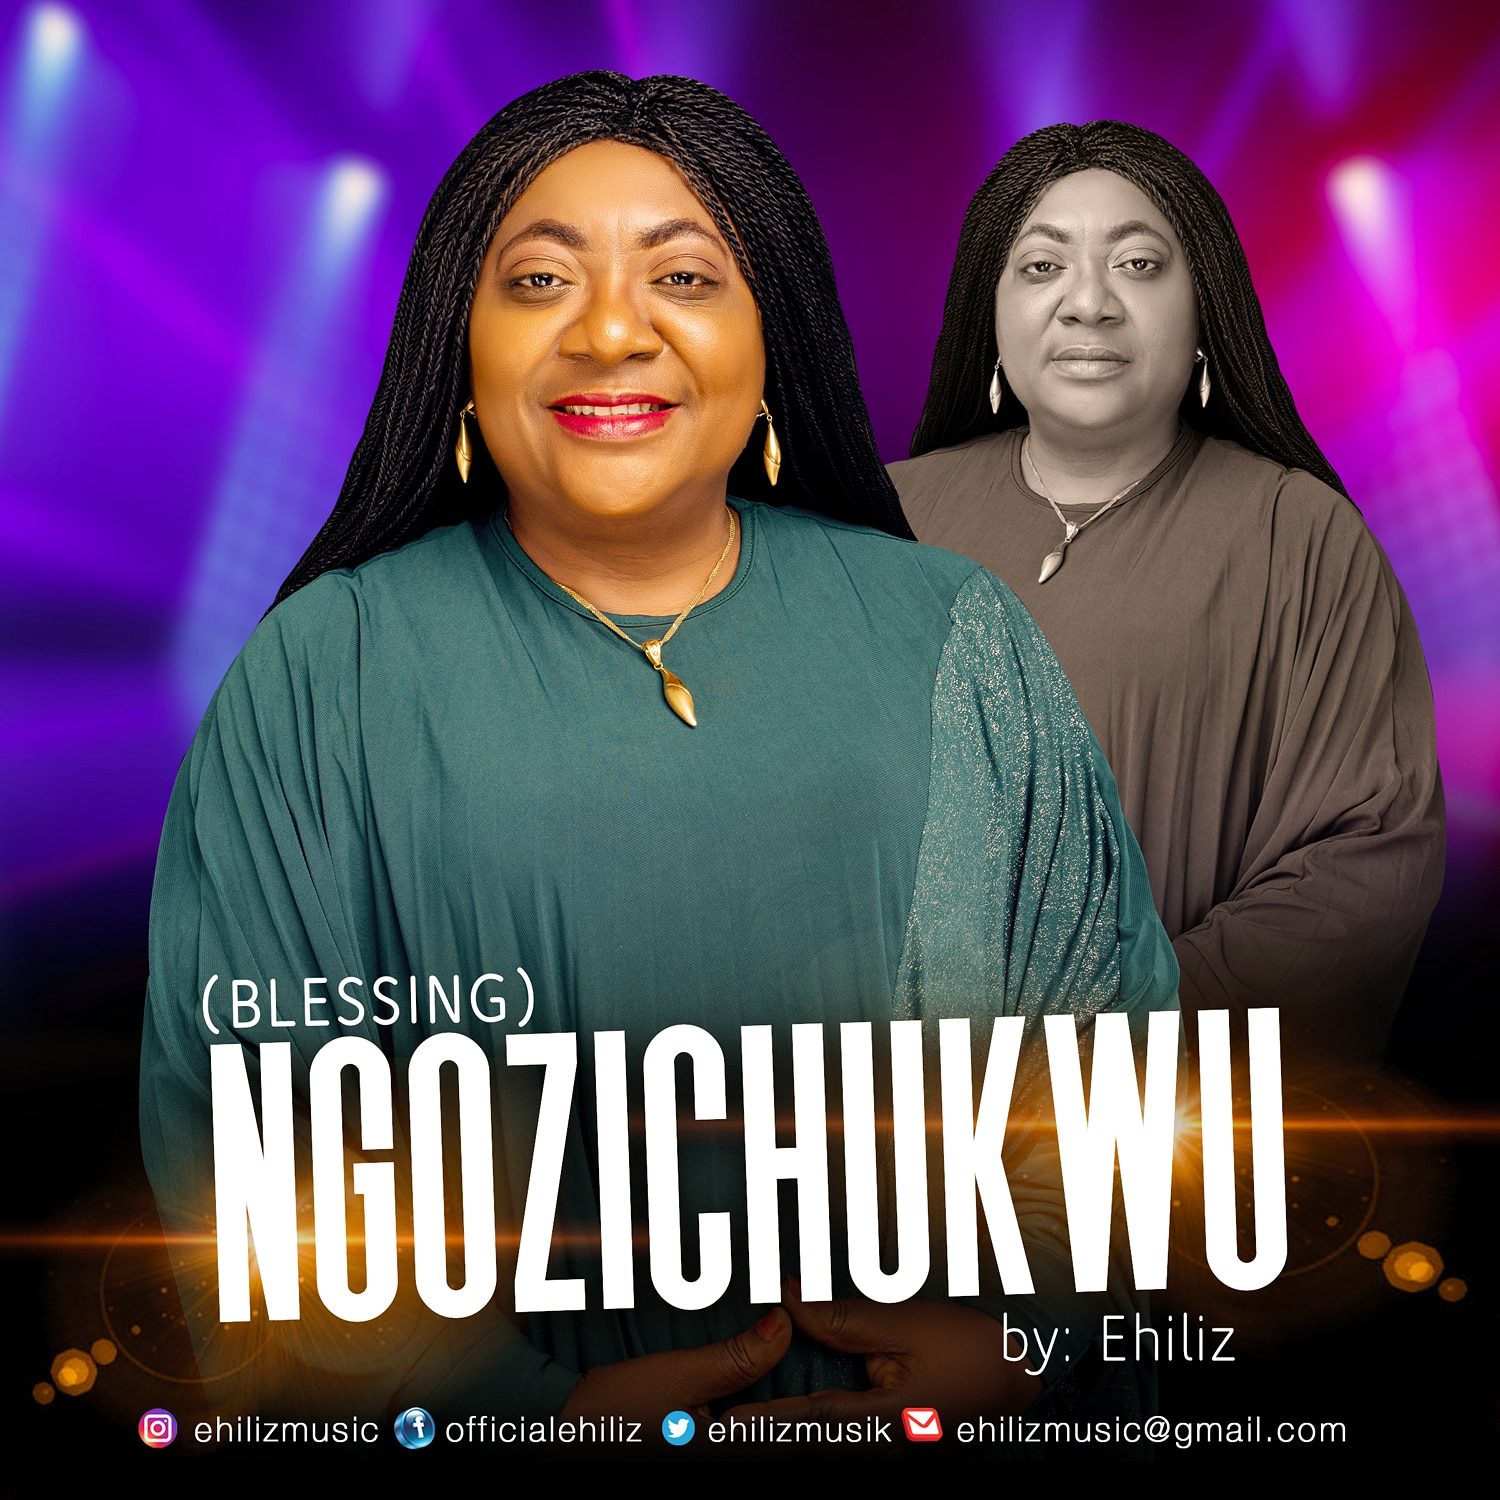 Ehiliz declares blessings upon blessings over the world in powerful new single titled NGOZICHUKWU.